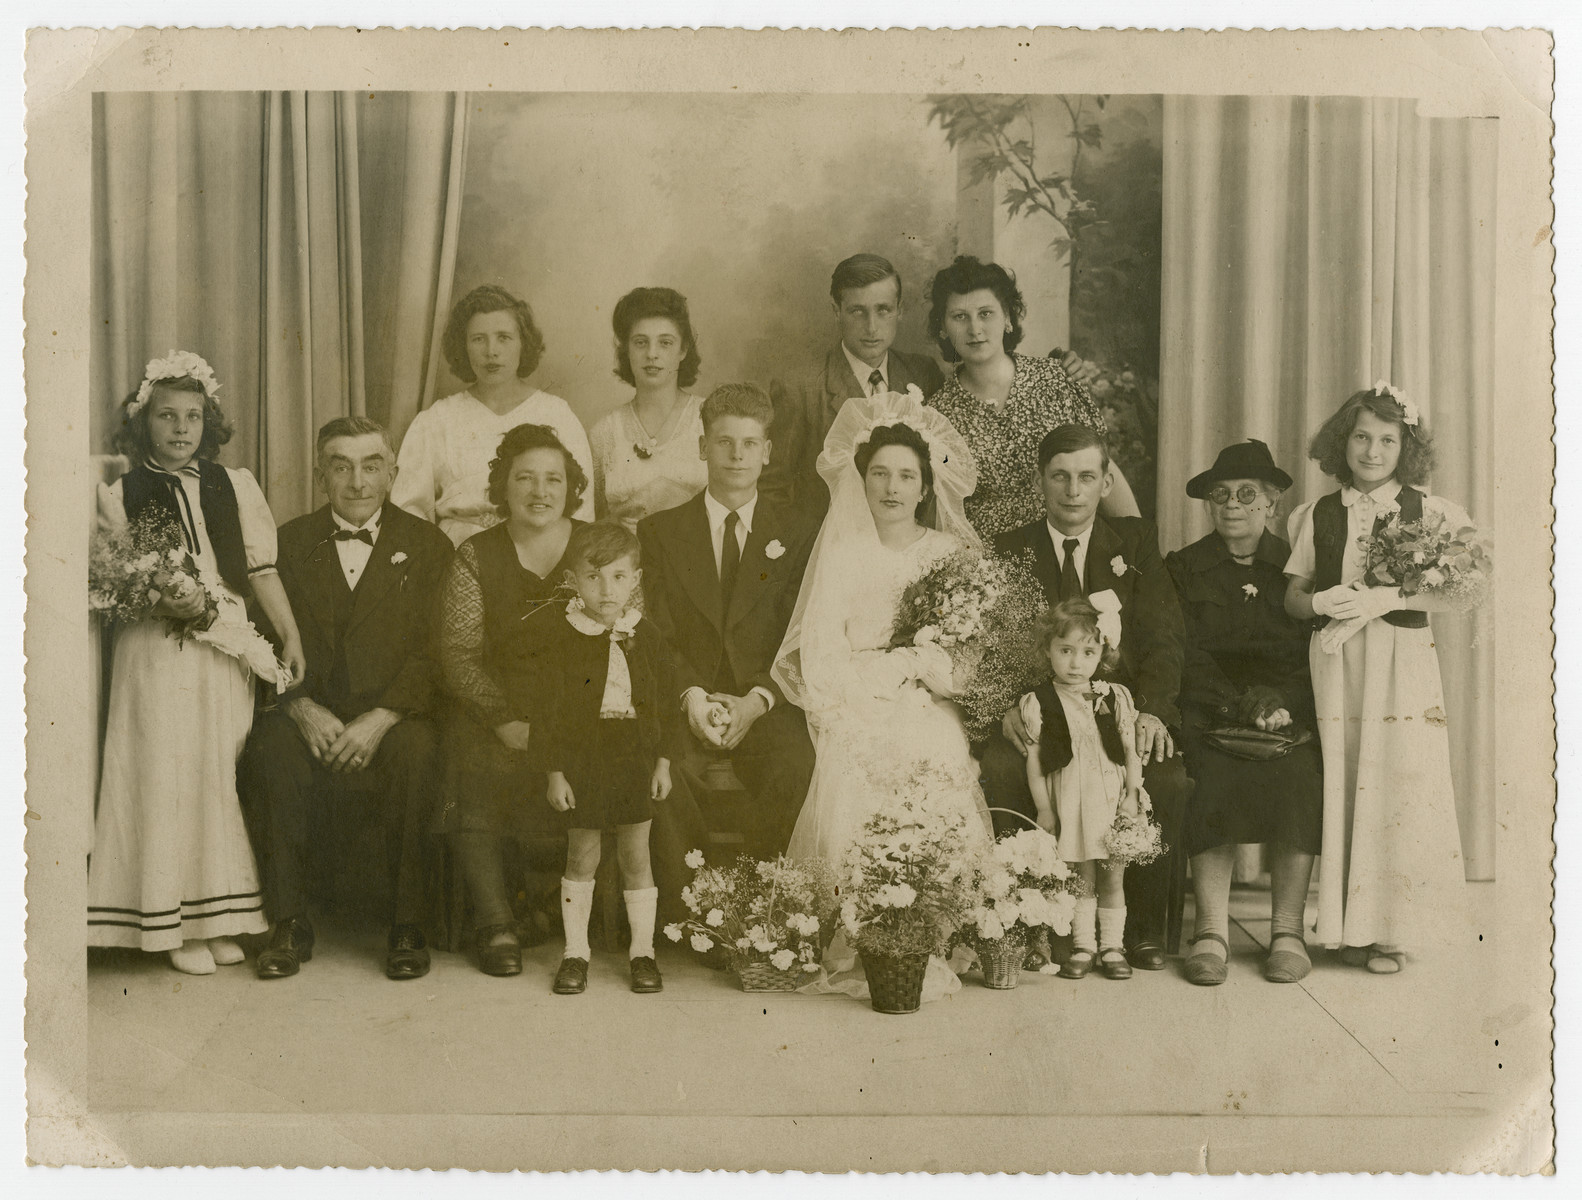 Portrait of the Bocahut family at a wedding celebration (sitting to the groom's right).   Jacques Karpik, who at the time was a child in hiding with this family, appears at the bottom left in front of Suzanne Bocahut.  The little girl is his sister Annette.  Directly behind her is Marcel Bocahut.